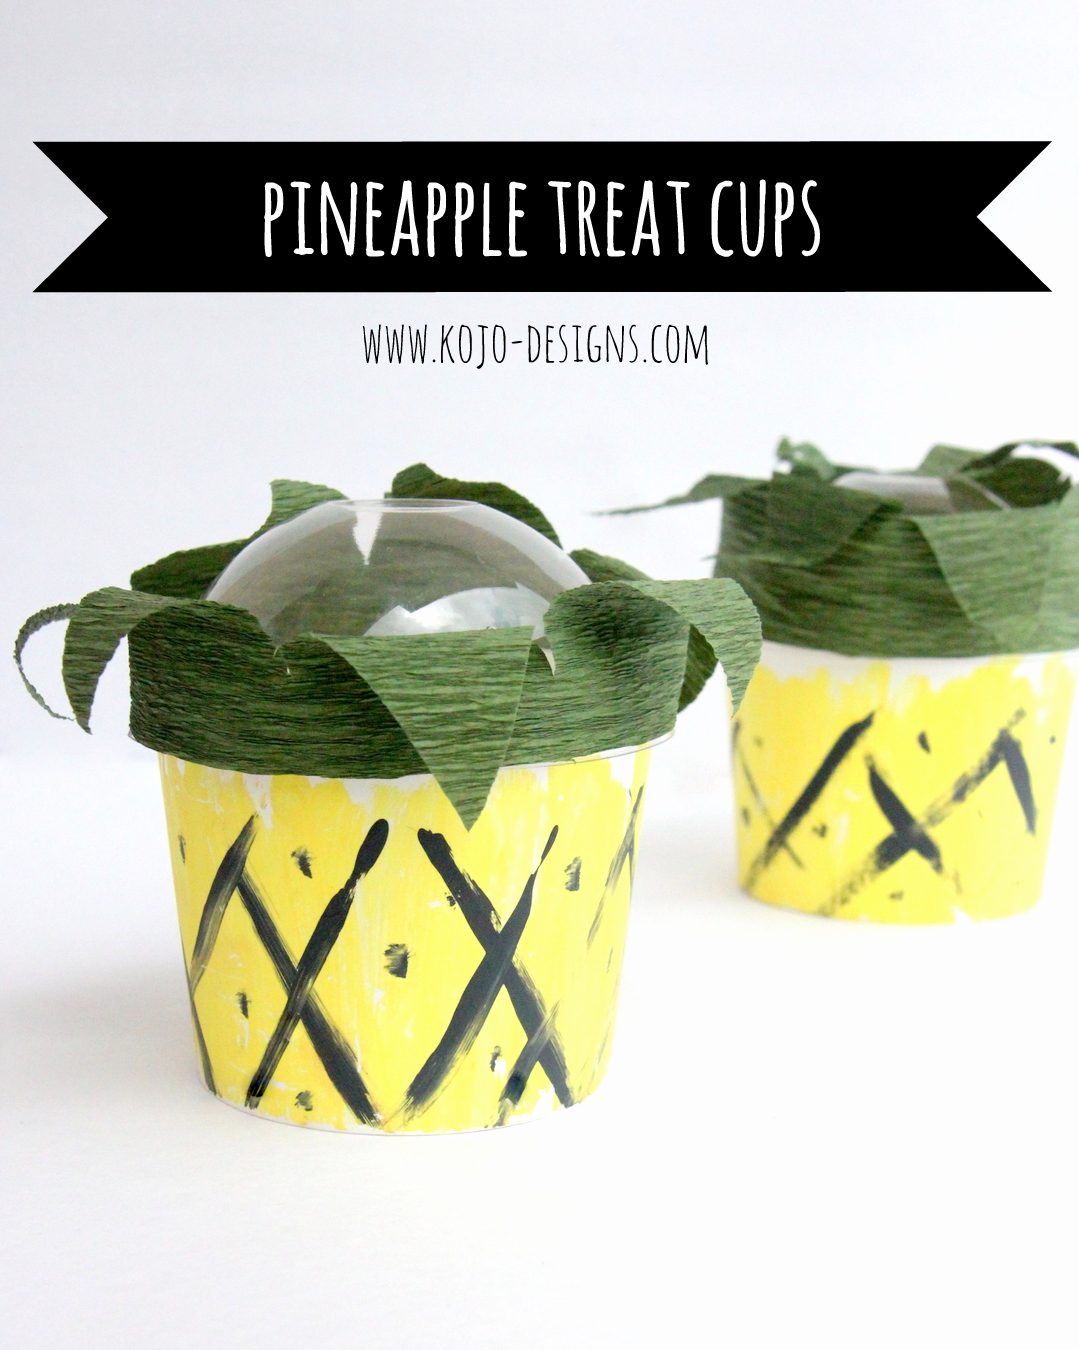 Luau food ideas- these DIY pineapple treats cups are the perfect addition to any luau (or Endless Summer party!)